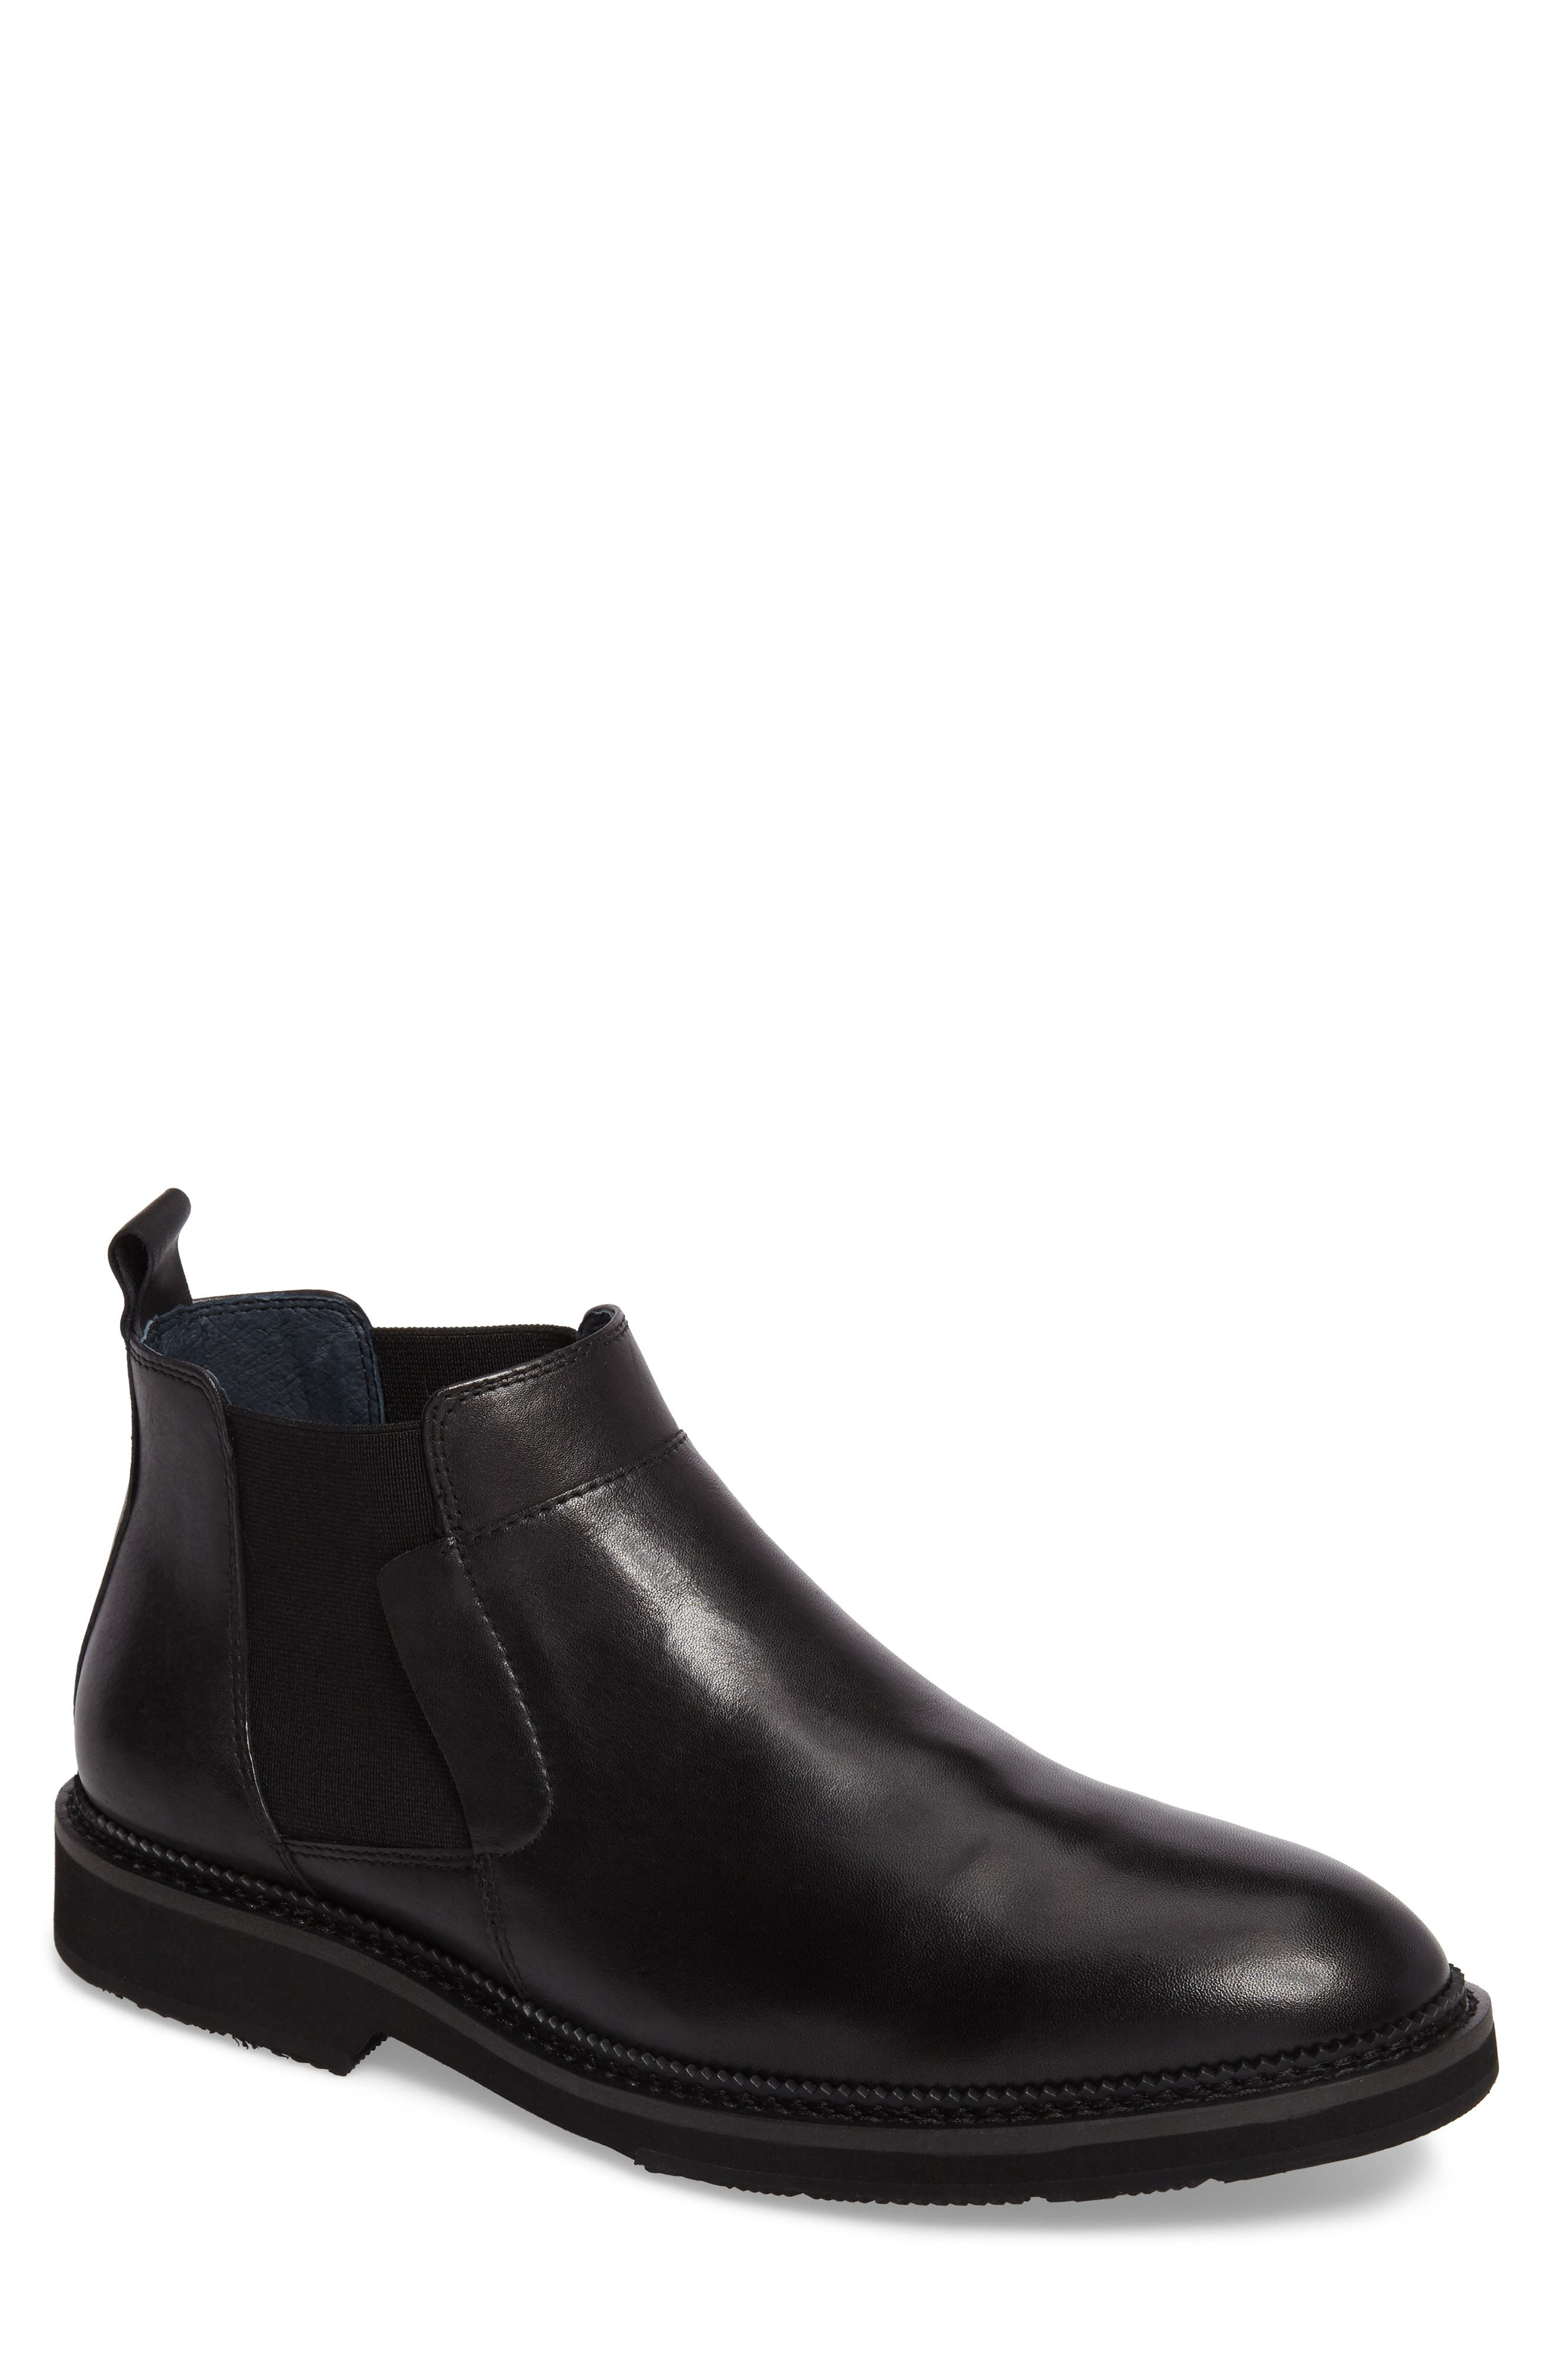 ZANZARA Garrad Chelsea Boot, Main, color, 001